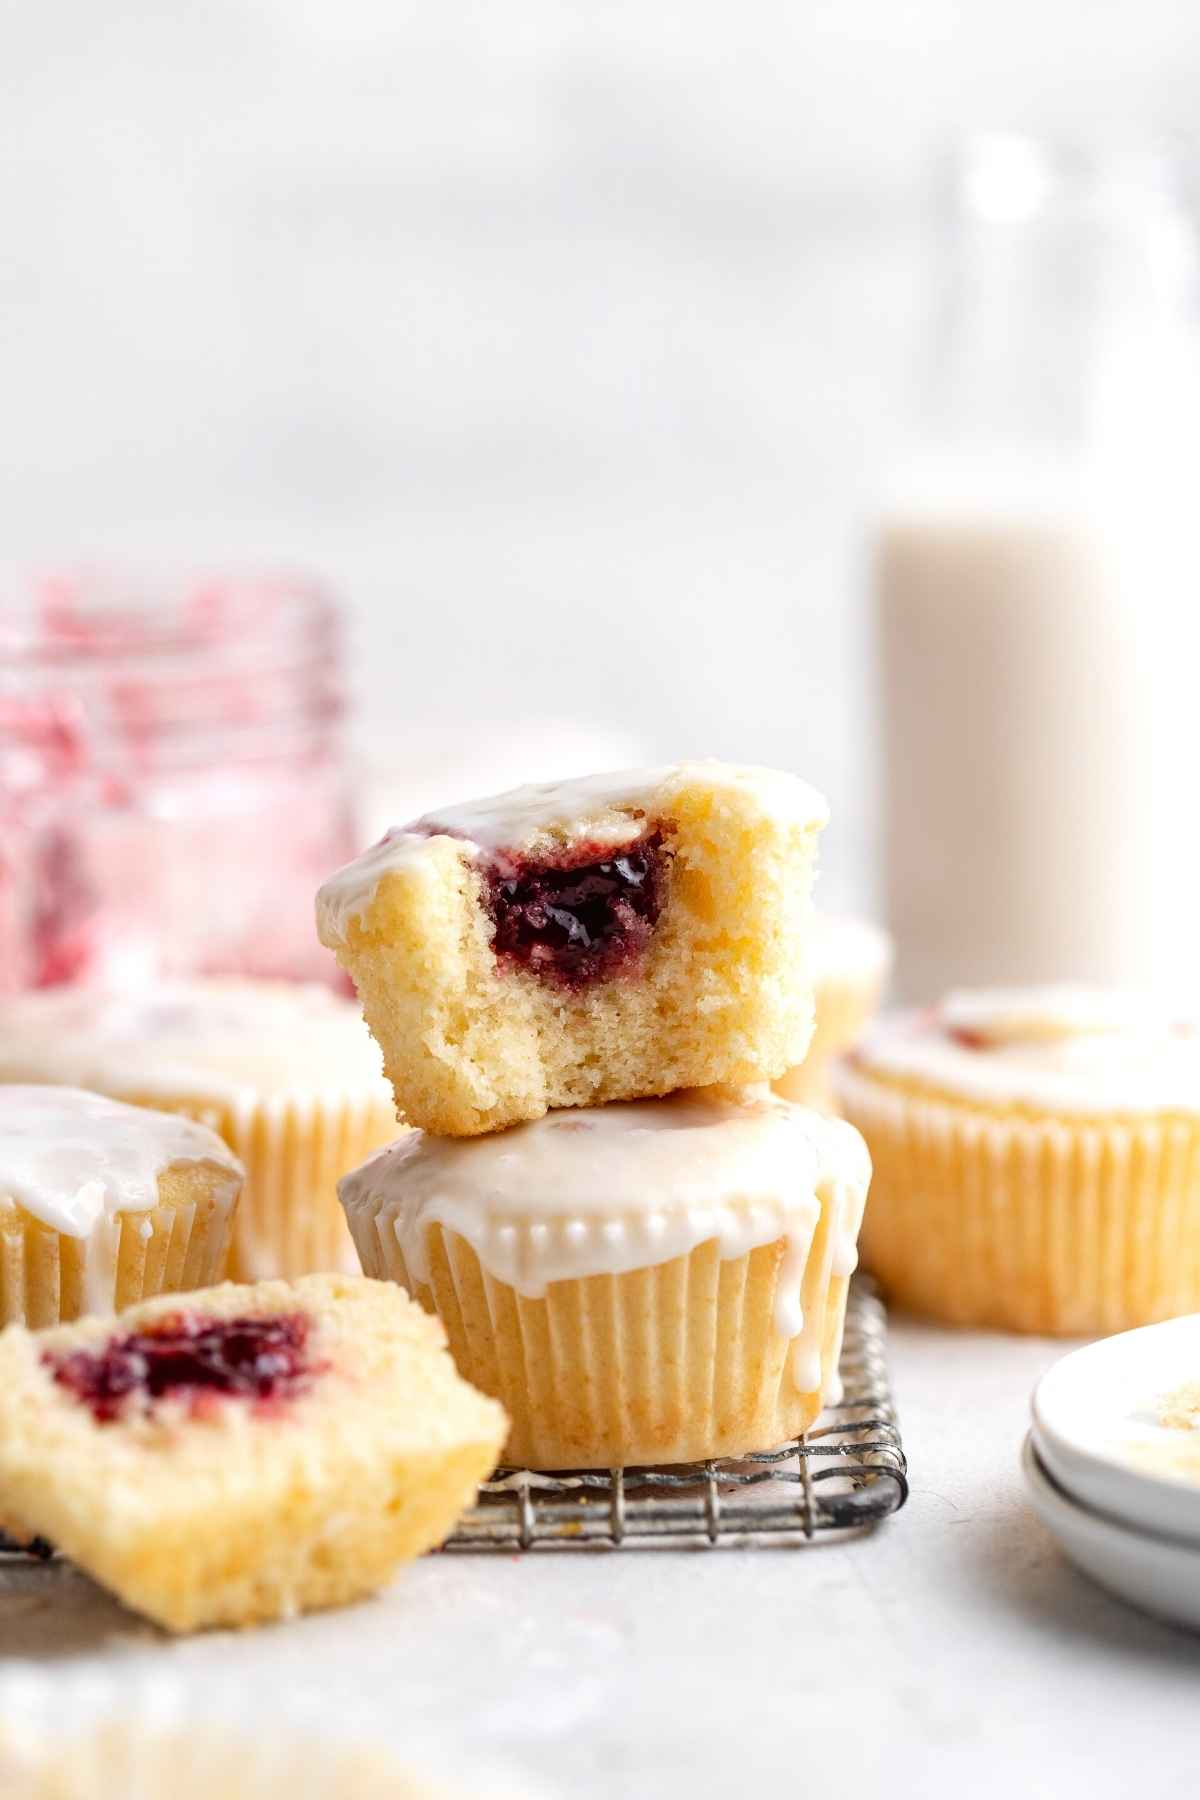 Jelly Doughnut Muffins on wire rack with bite taken